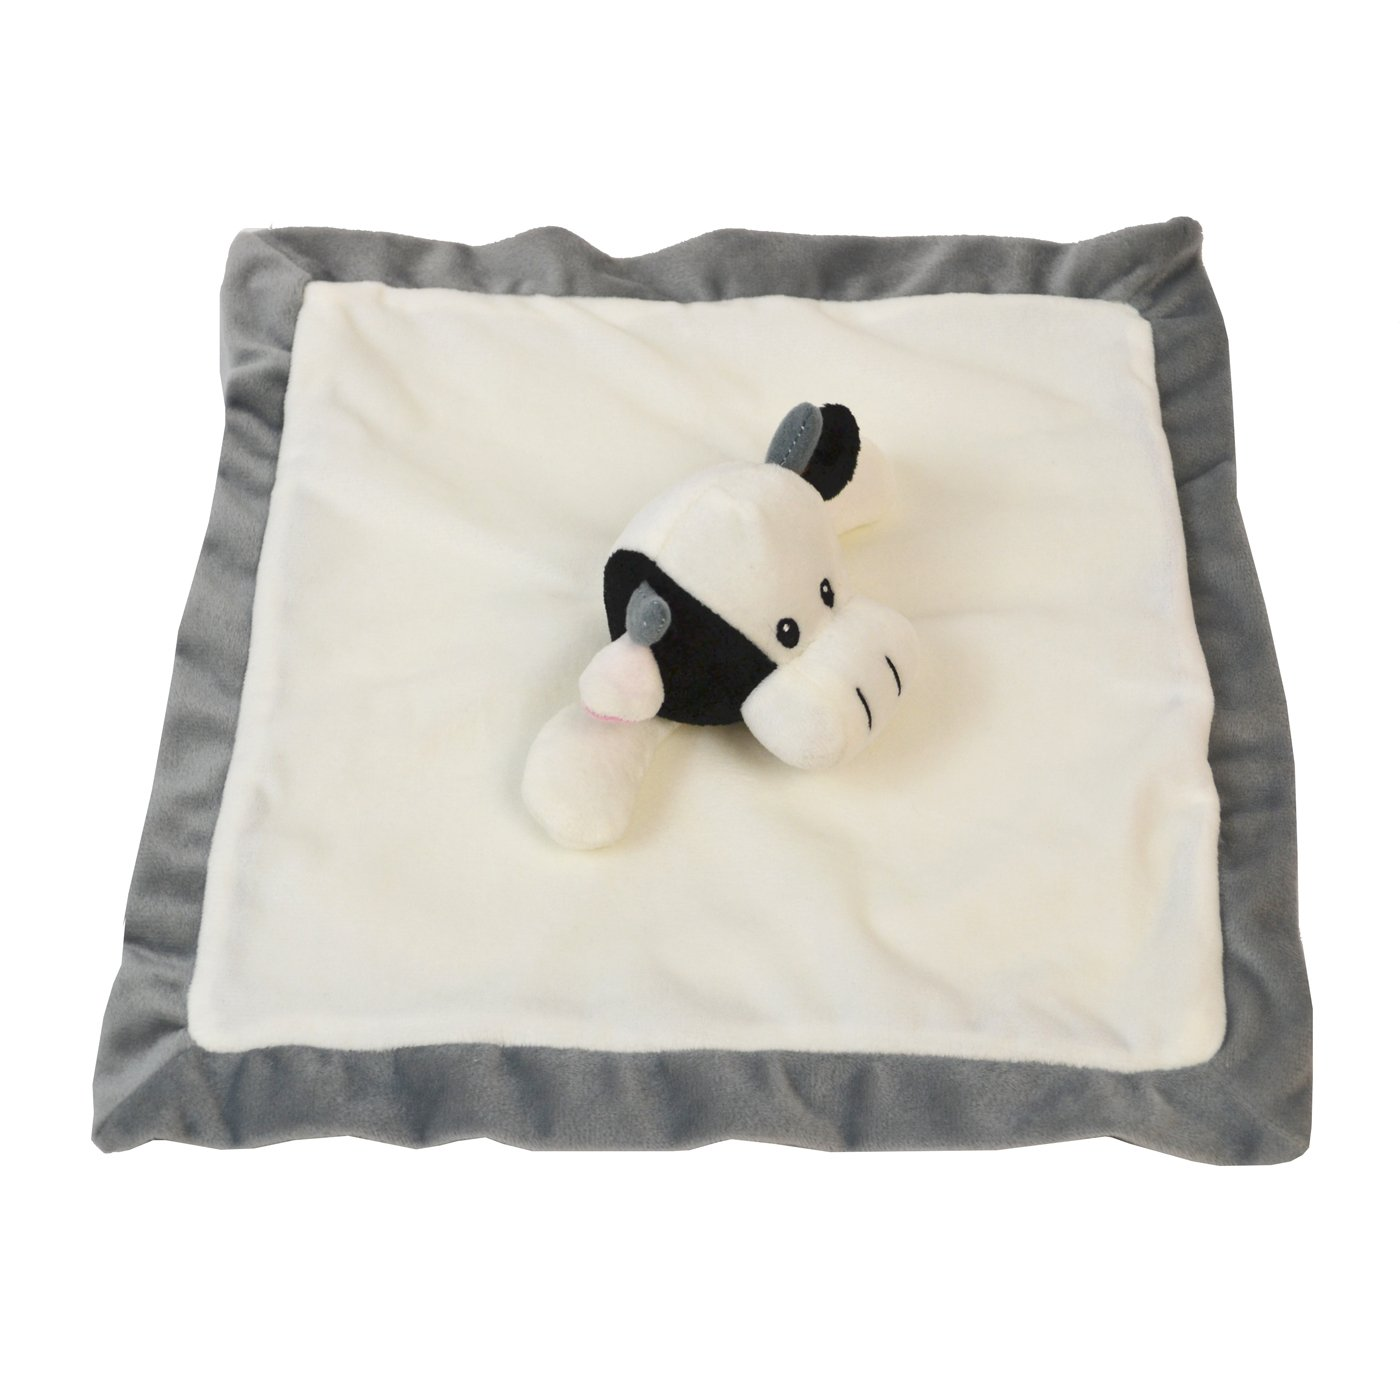 d509f8ac1 Amazon.com  Lovey Security Blanket 12 inch Square Stuffed Animal ...